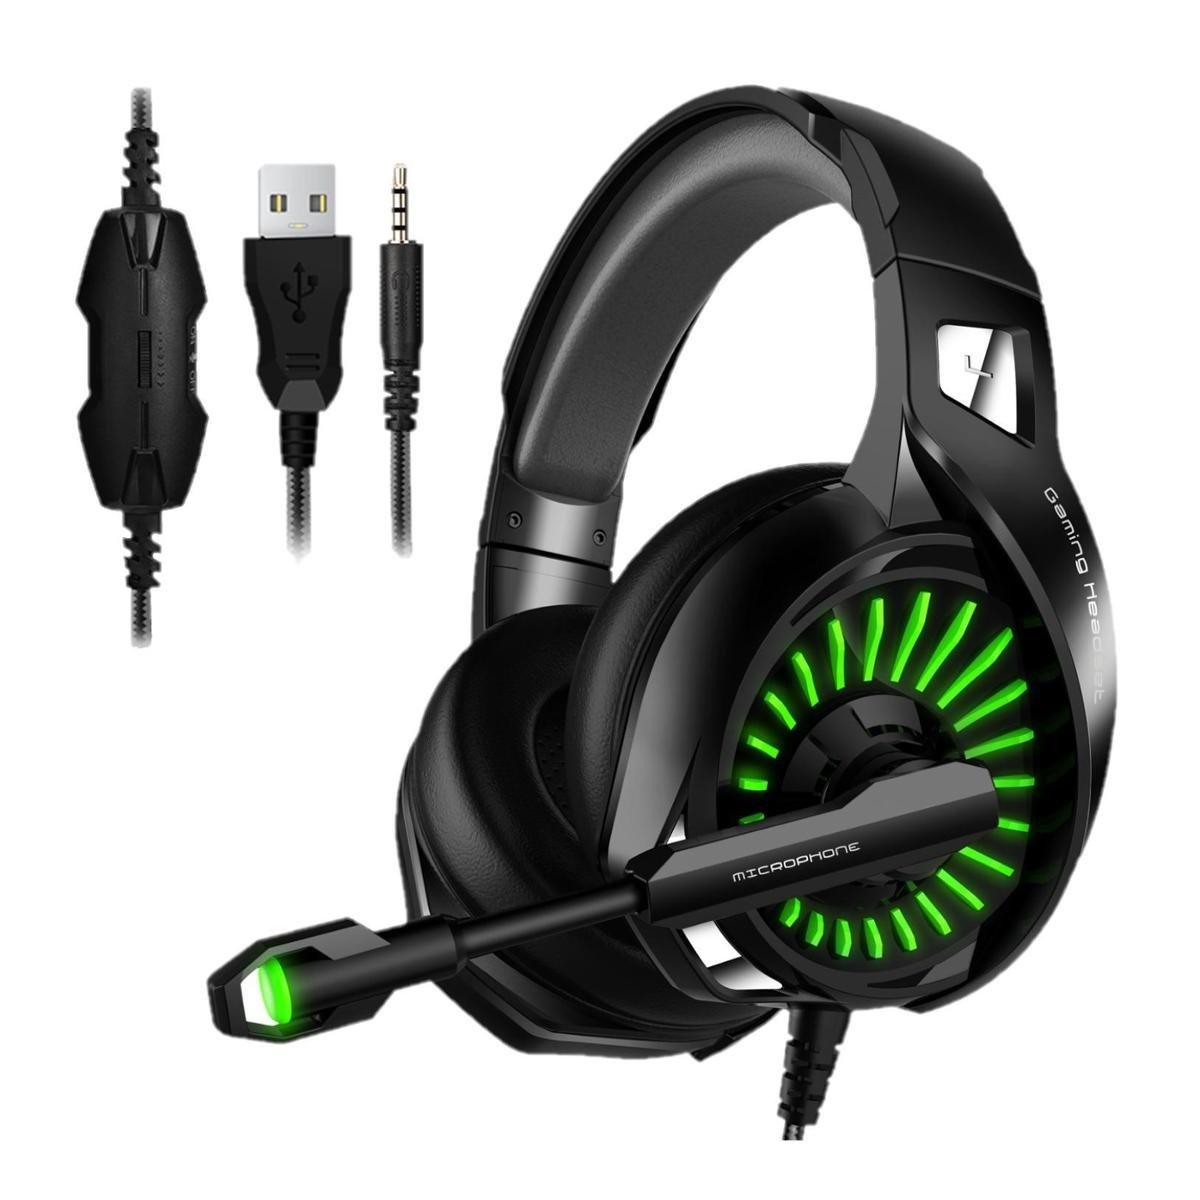 Fone de ouvido Headset Gamer Microfone Compativel Ps4/X-one Celular PC LM1 Inland